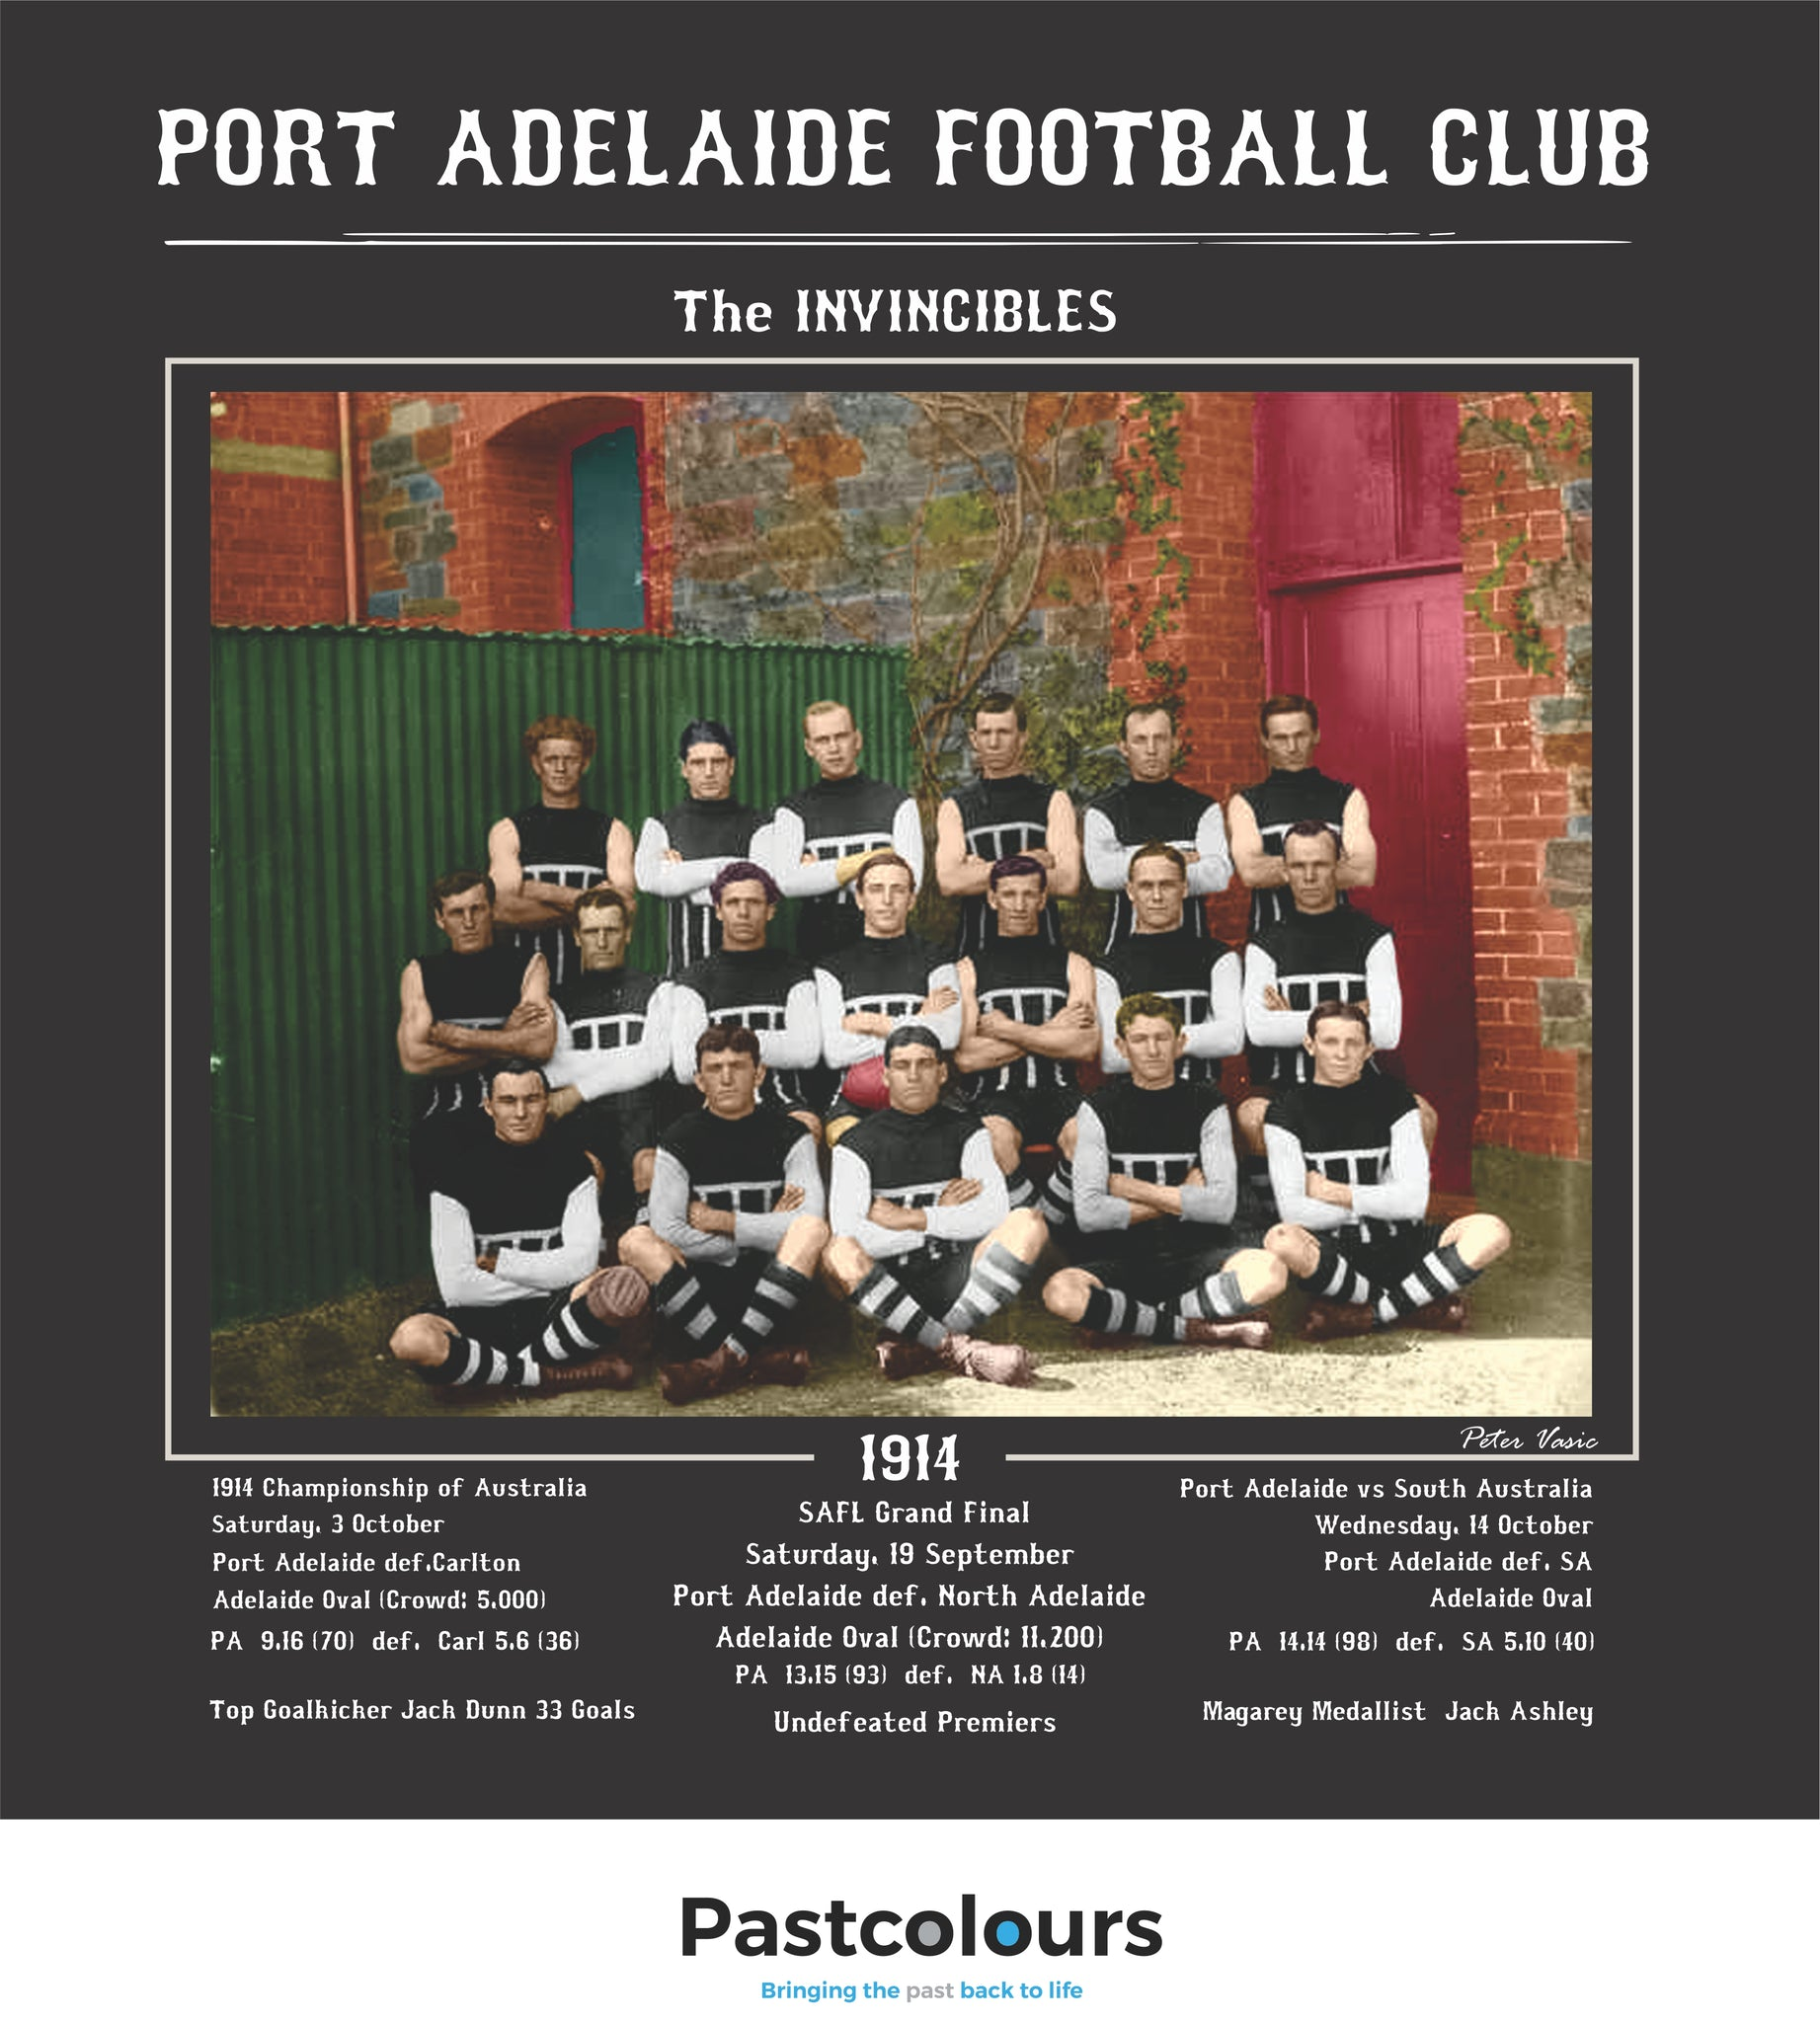 Port Adelaide Football Club 1914: The Invincibles-In COLOUR.